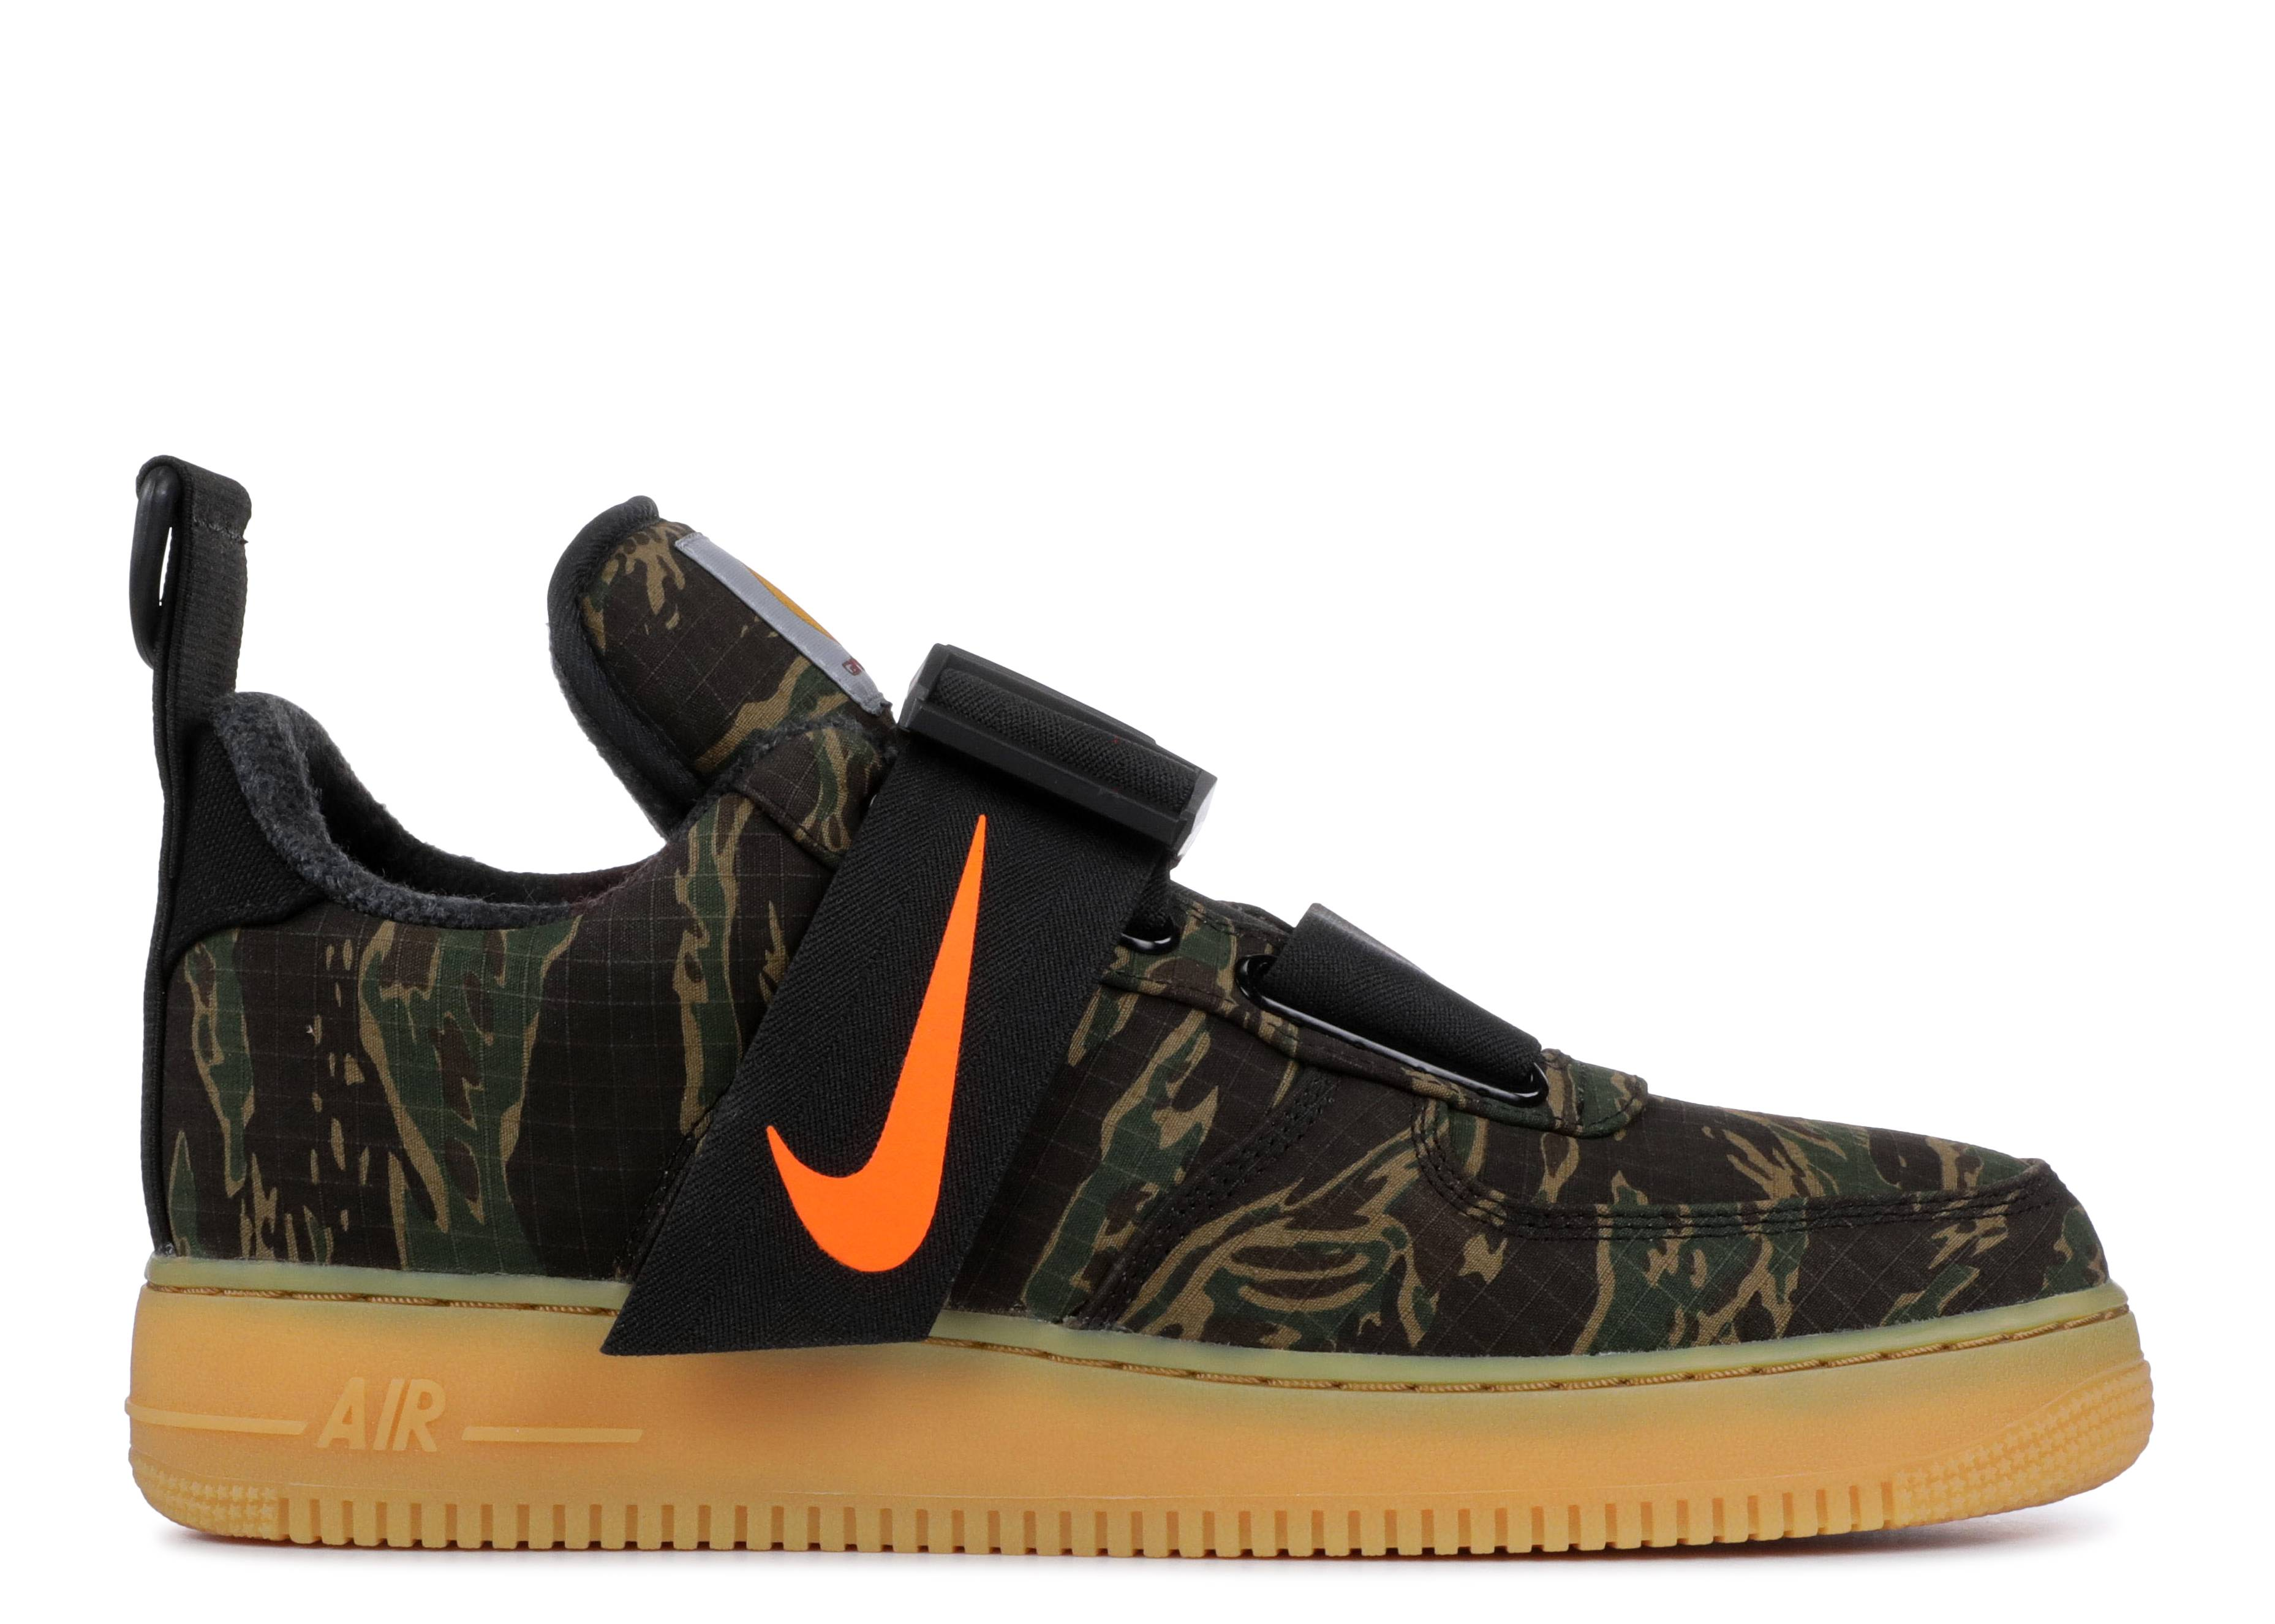 nike air force 1 low utility carhartt wip camo